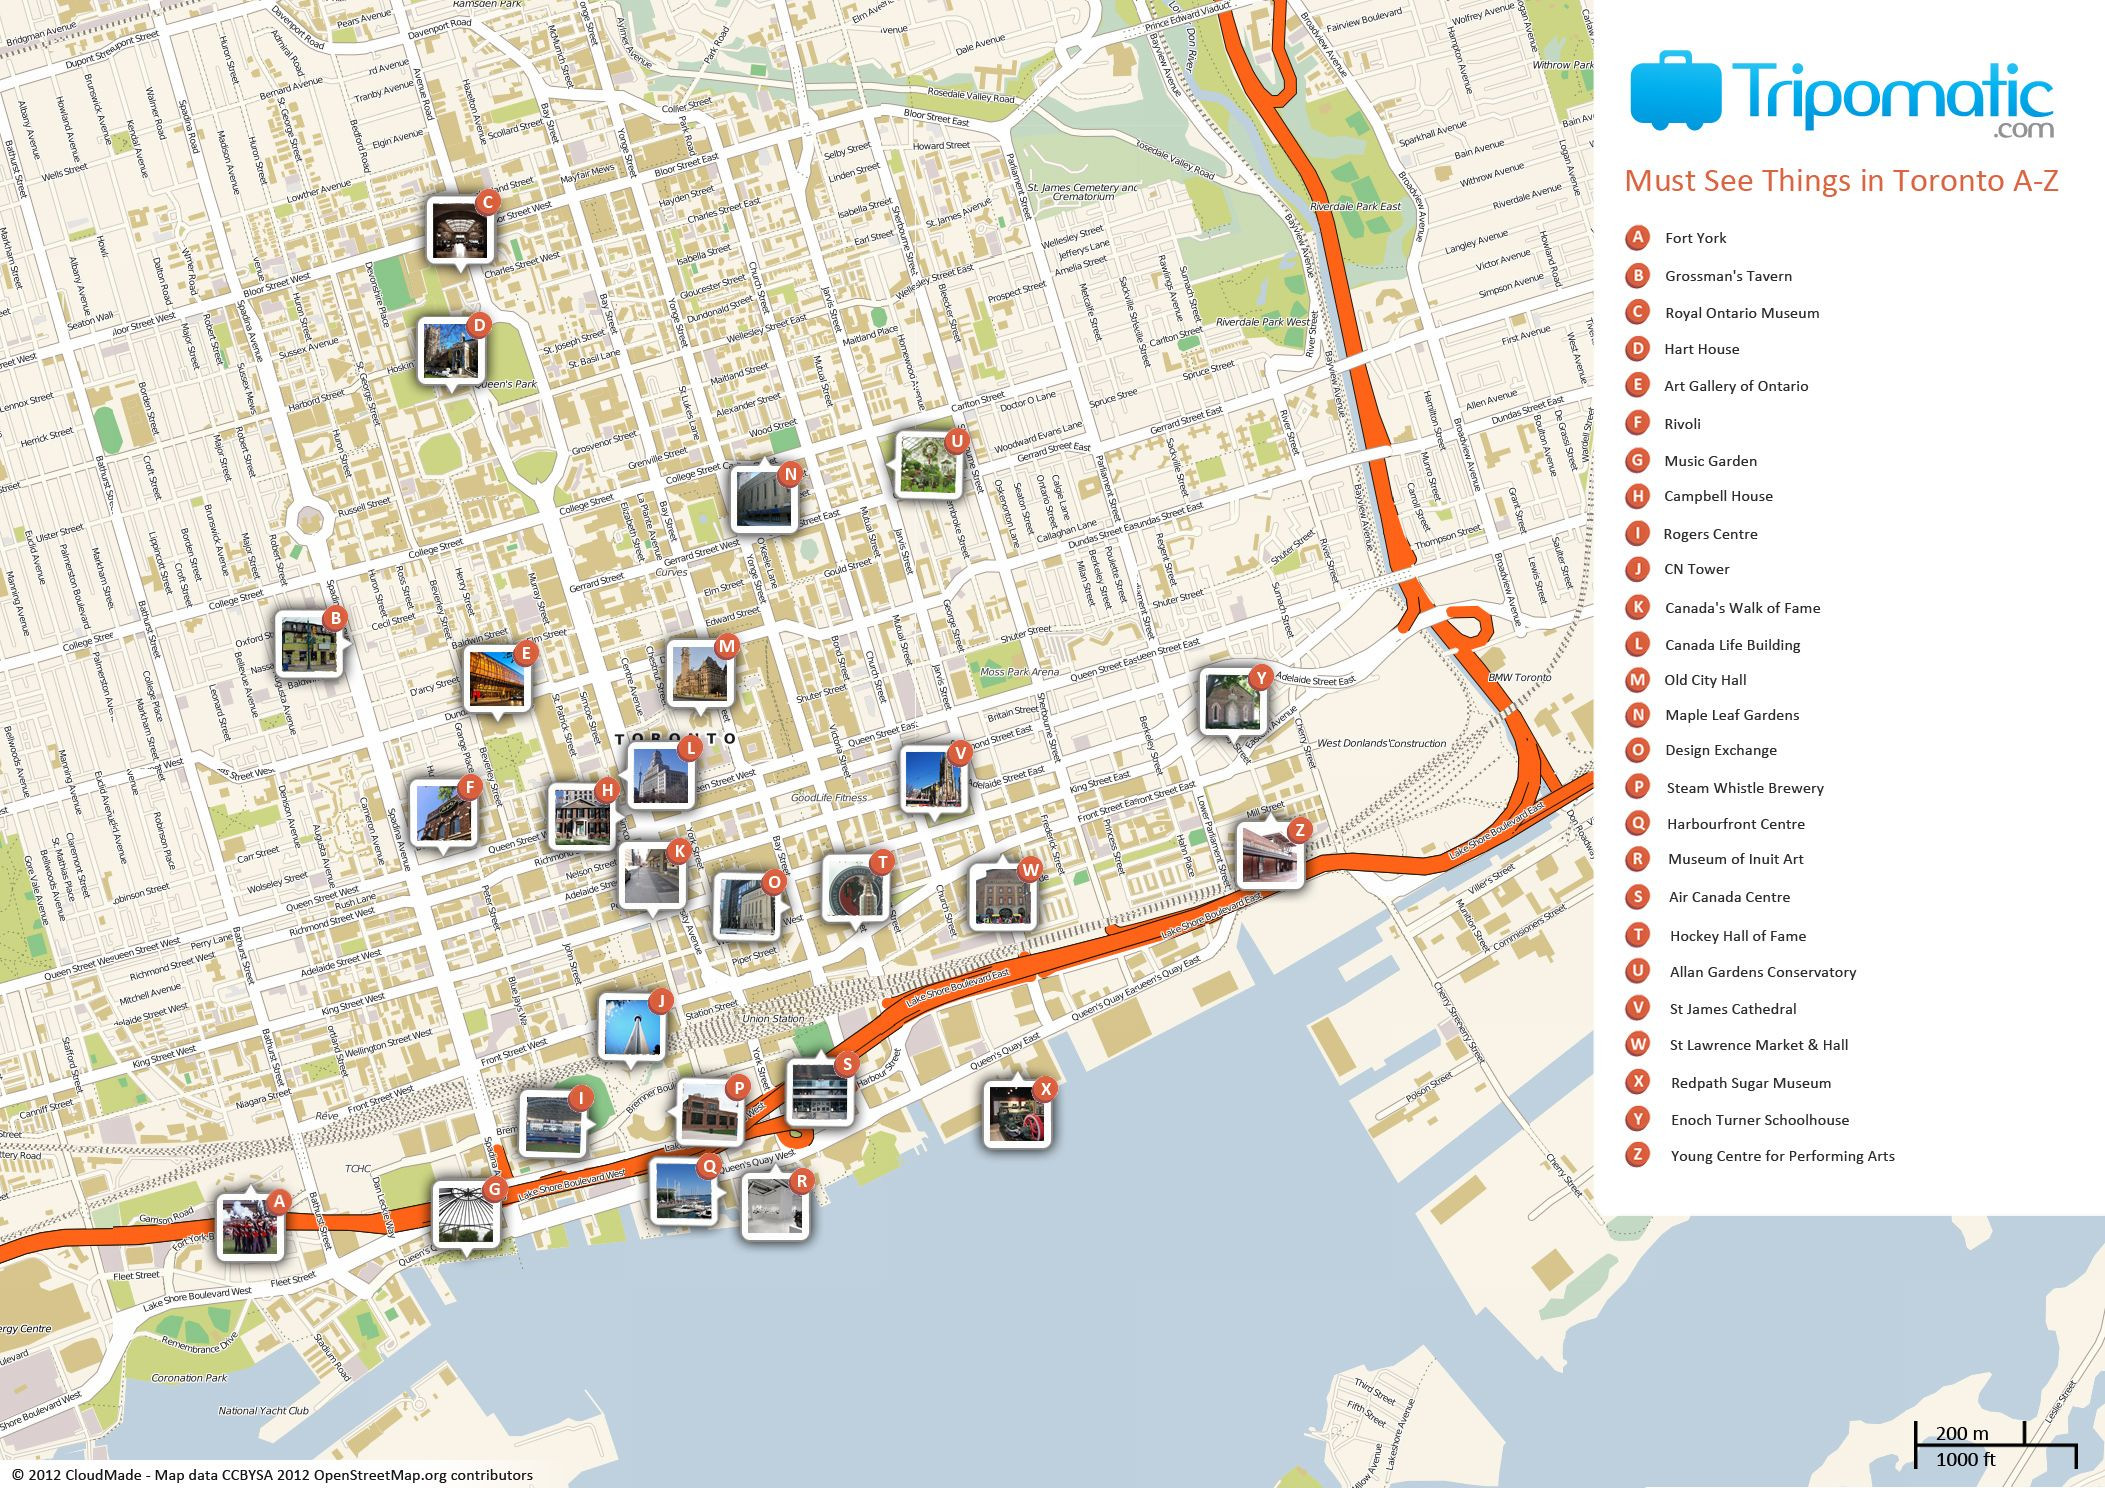 Free Printable Map of Toronto attractions